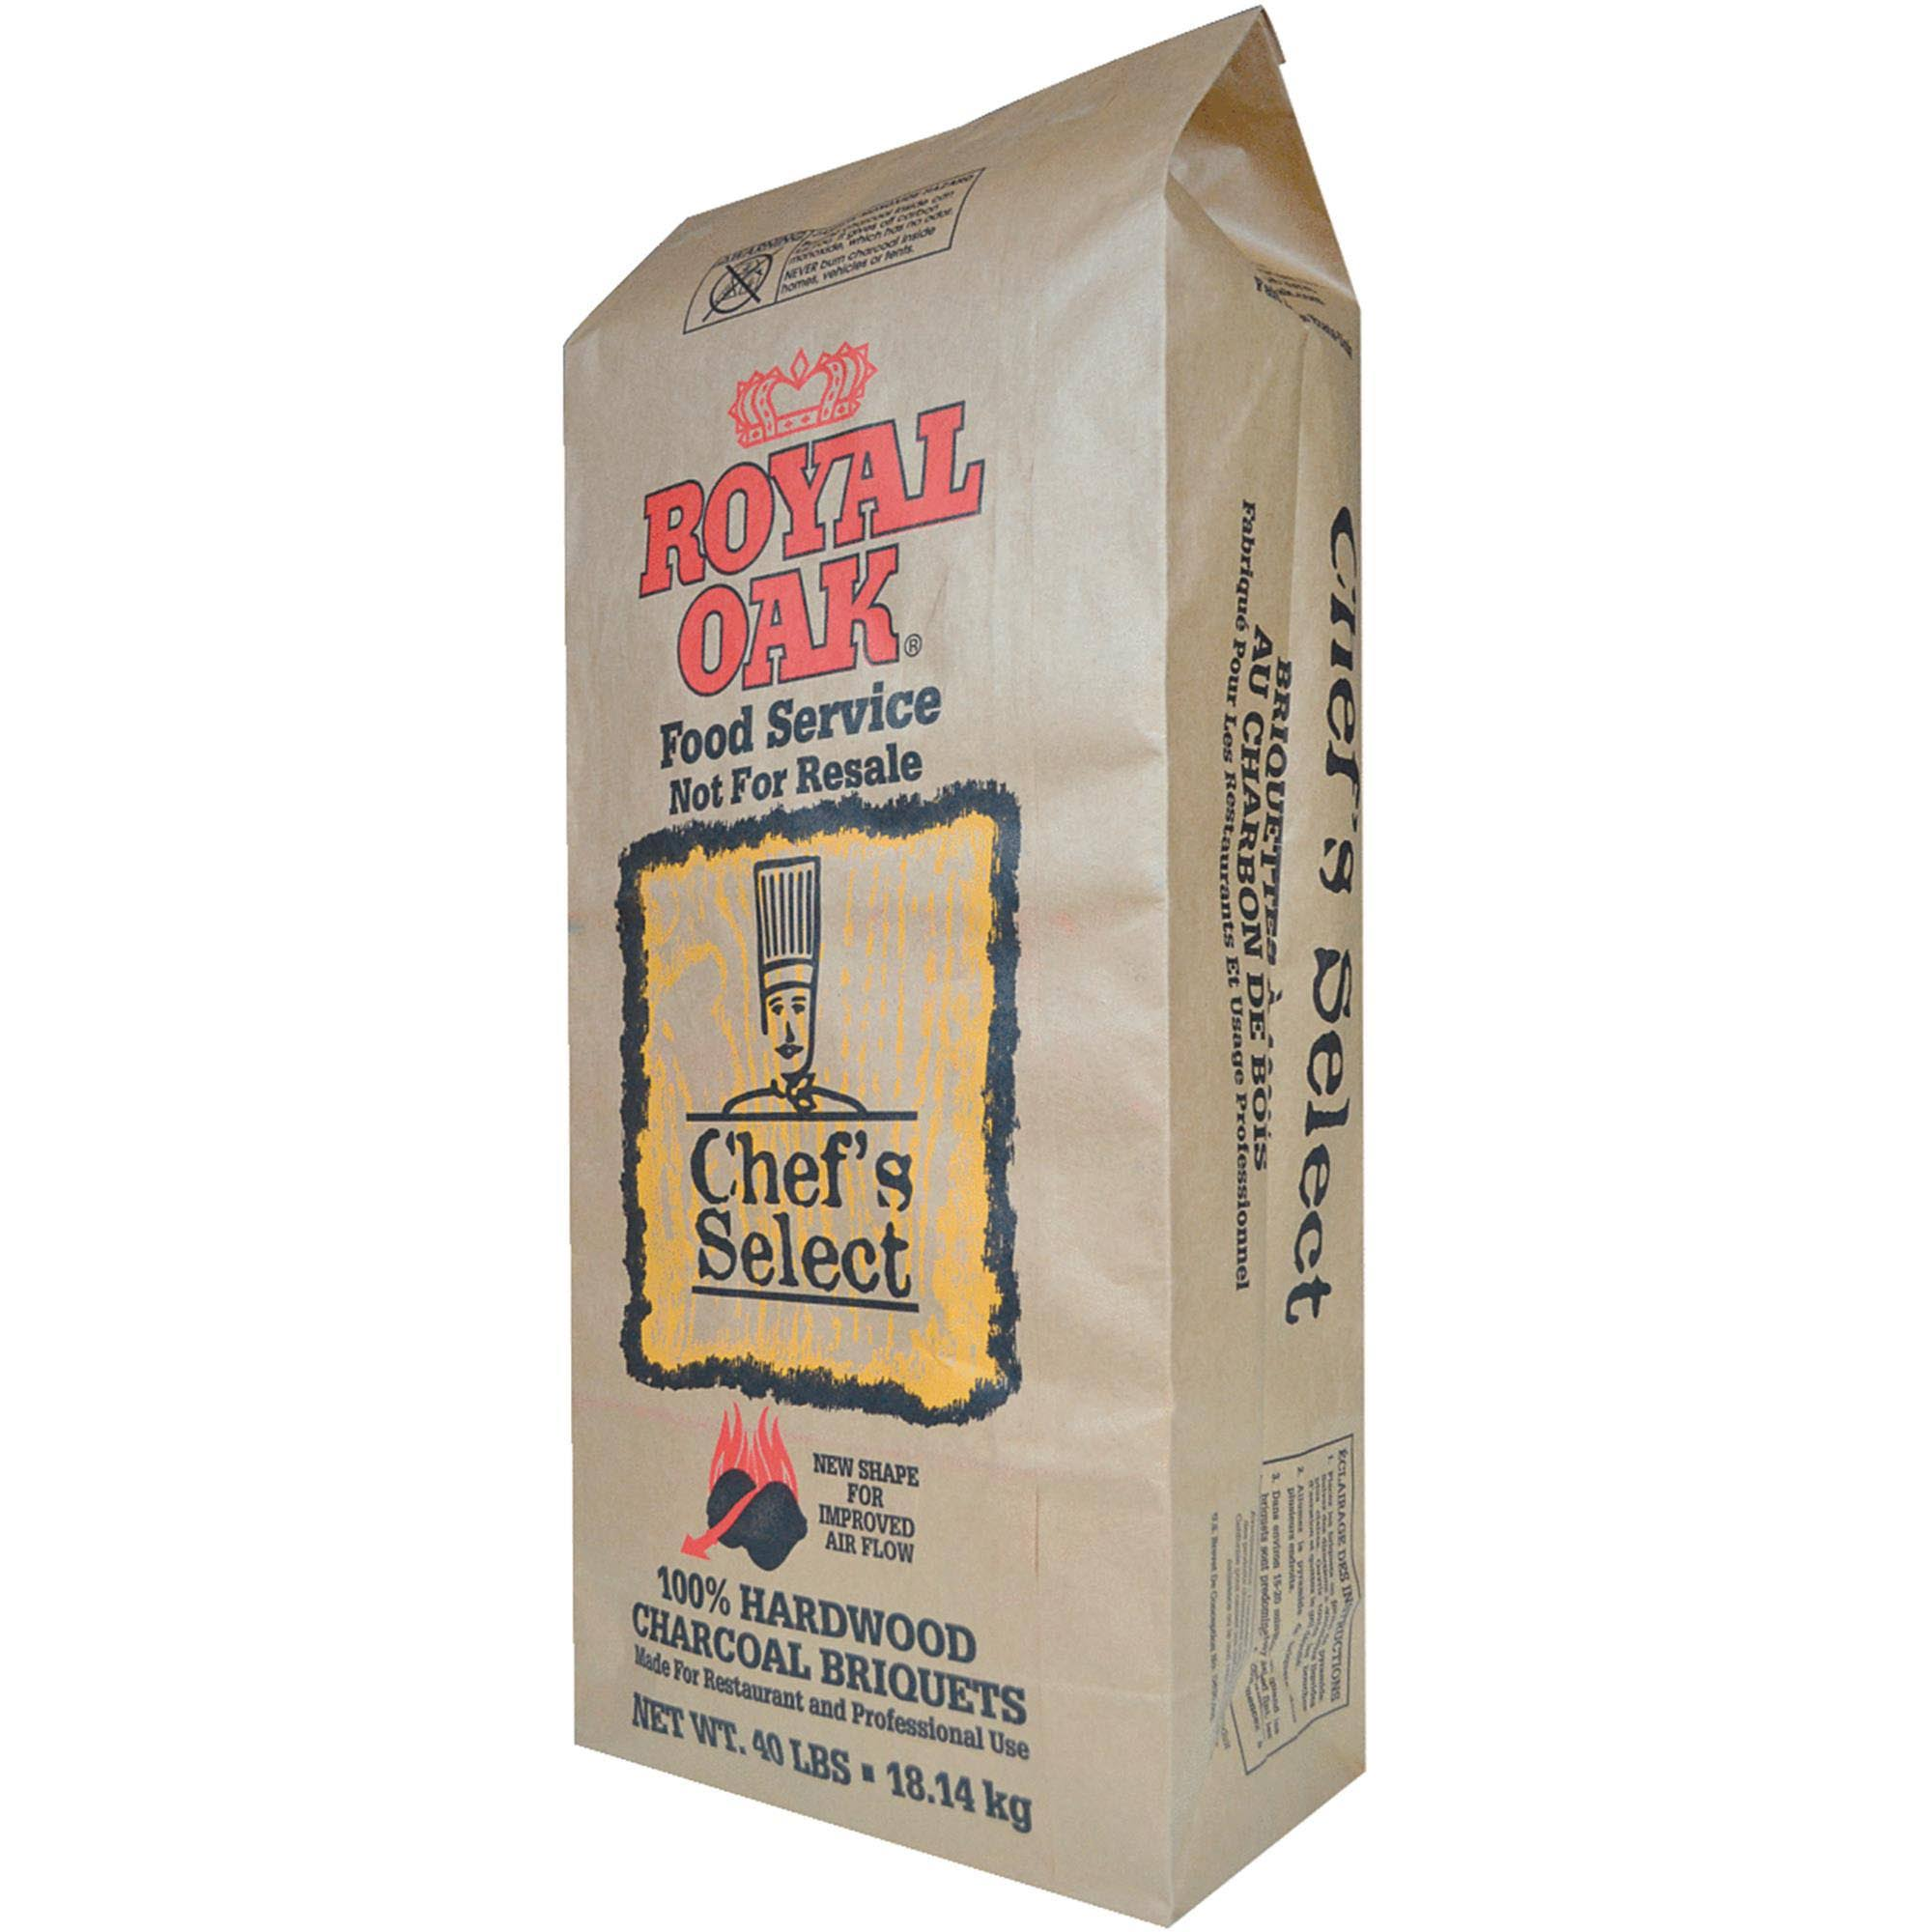 Royal Oak Chef's Select Hardwood Charcoal Briquettes